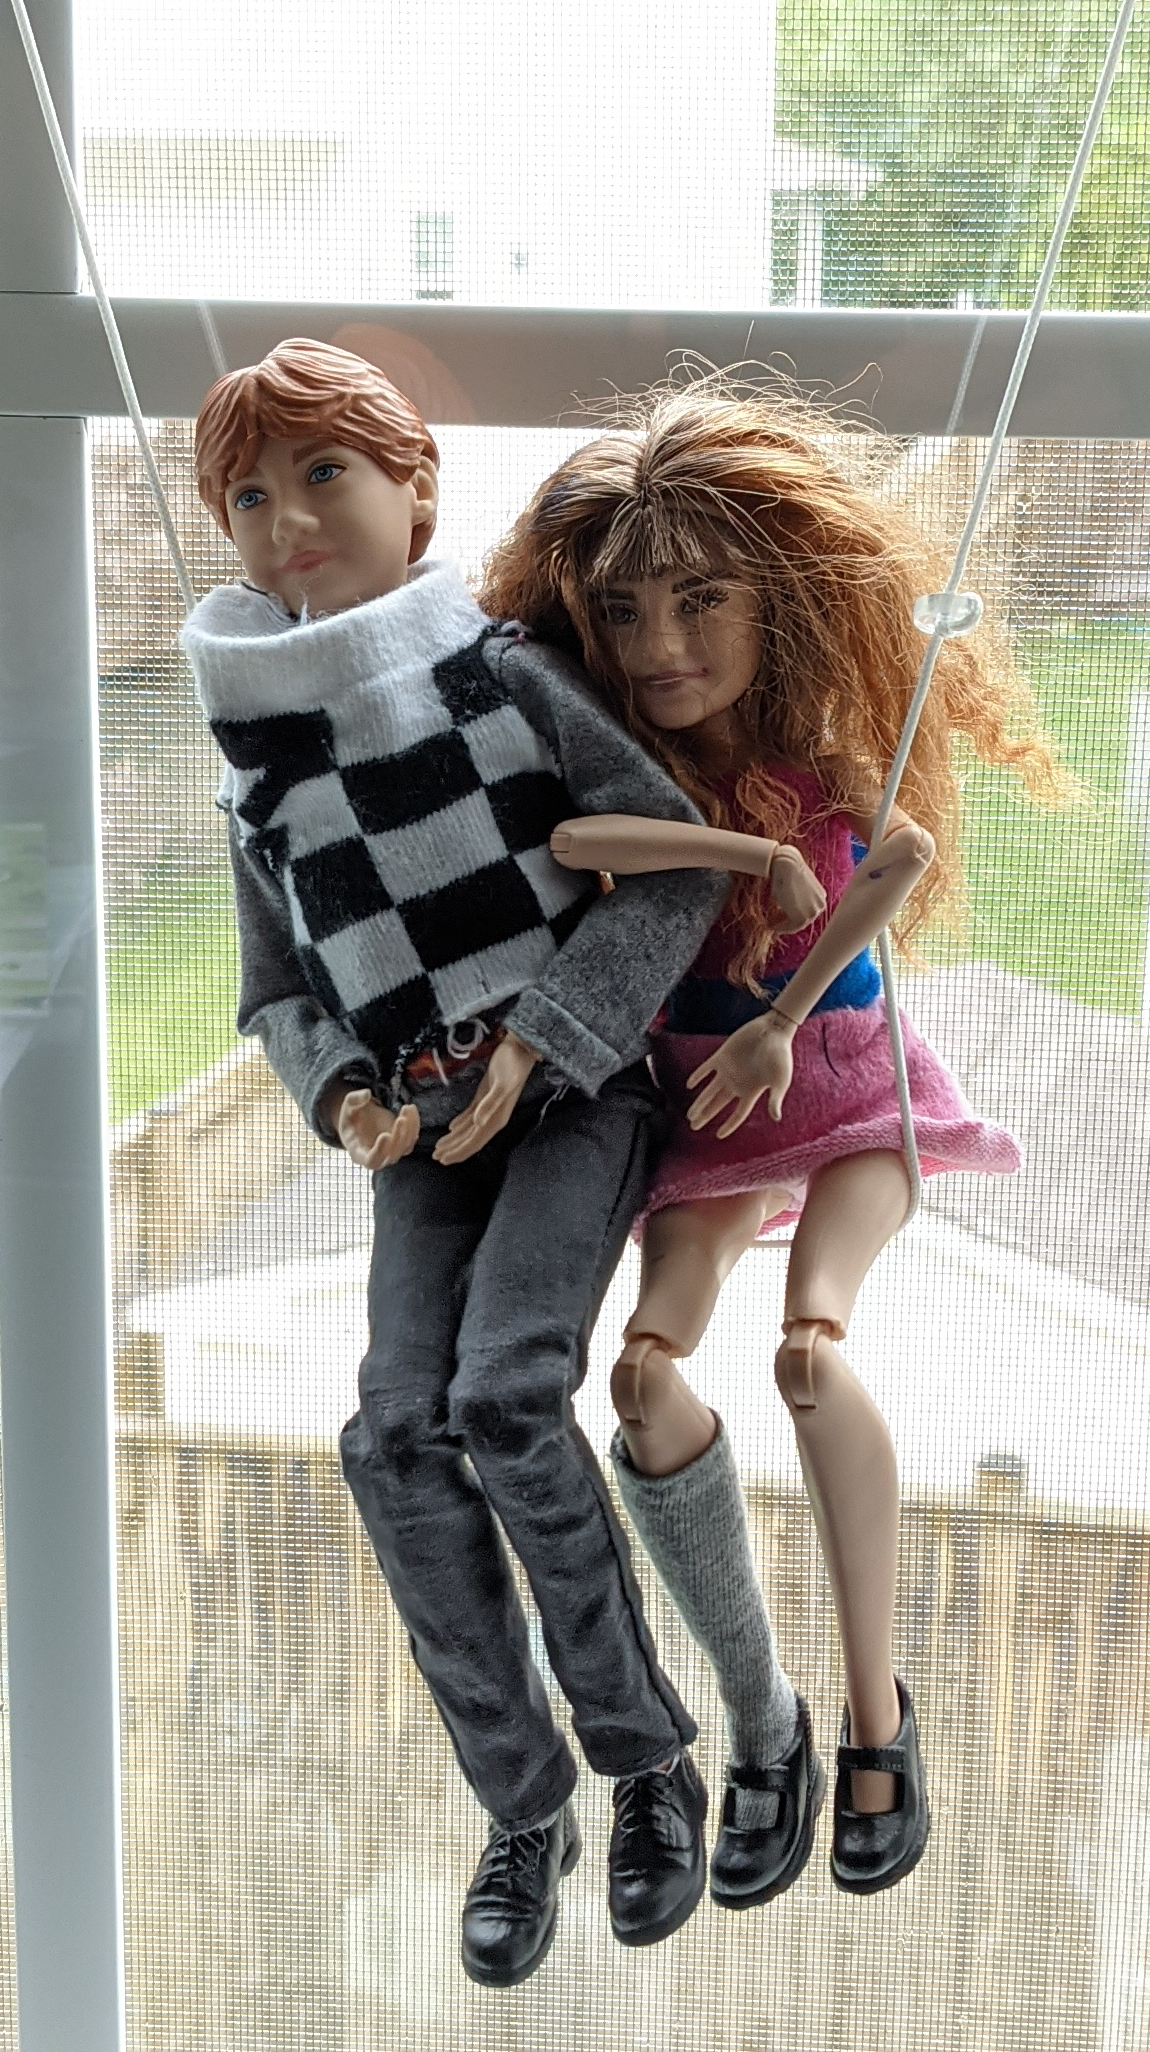 A photo of two dolls hanging on a string in front of a window as if on a swing